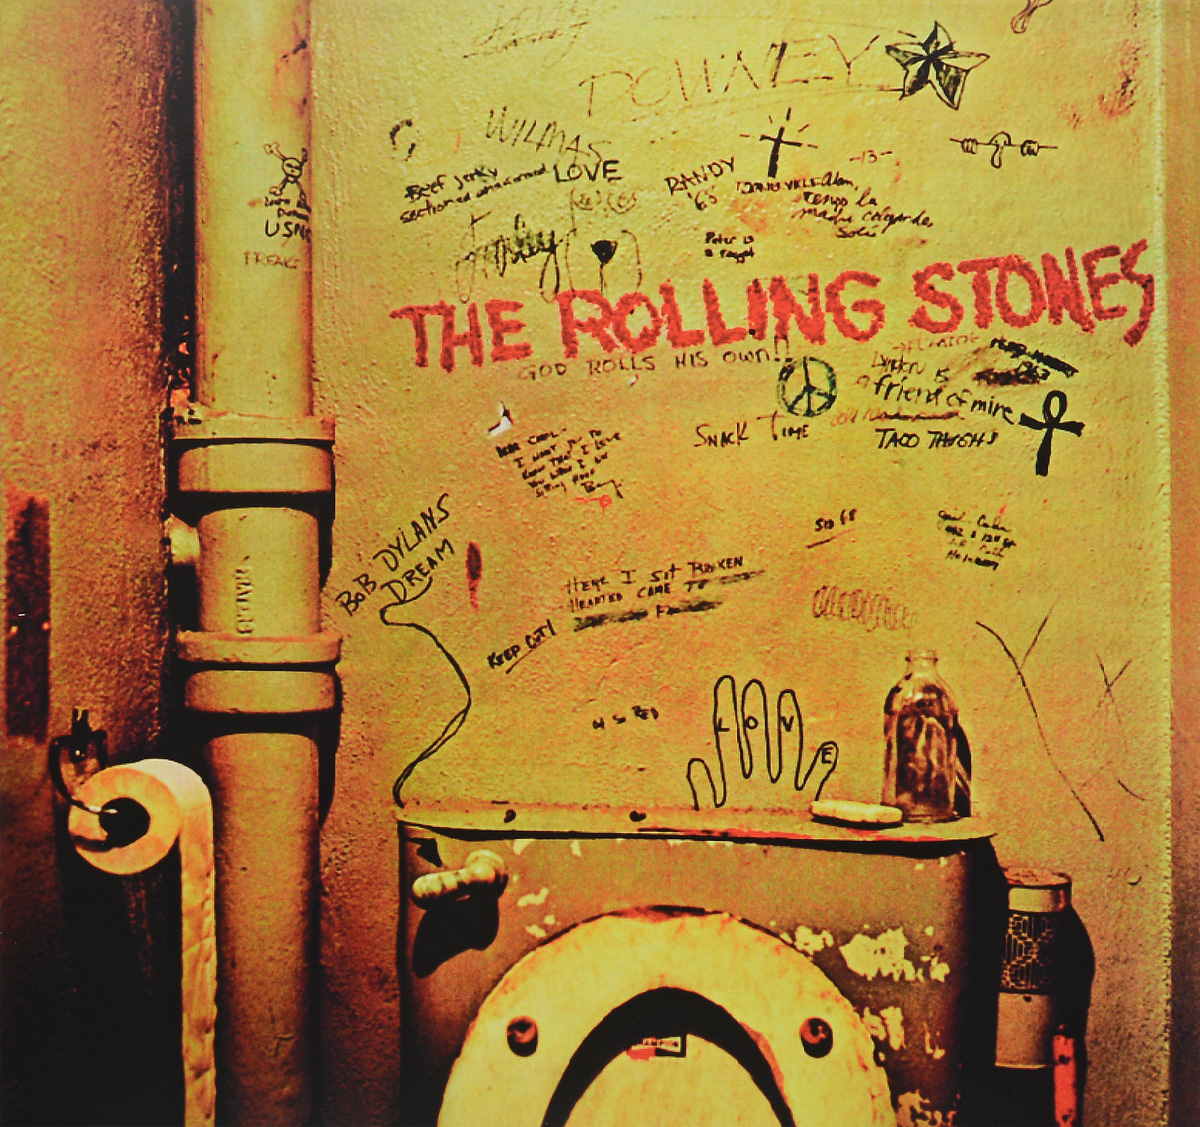 The Rolling Stones The Rolling Stones. Beggars Banquet (LP) spiritual beggars spiritual beggars ad astra lp